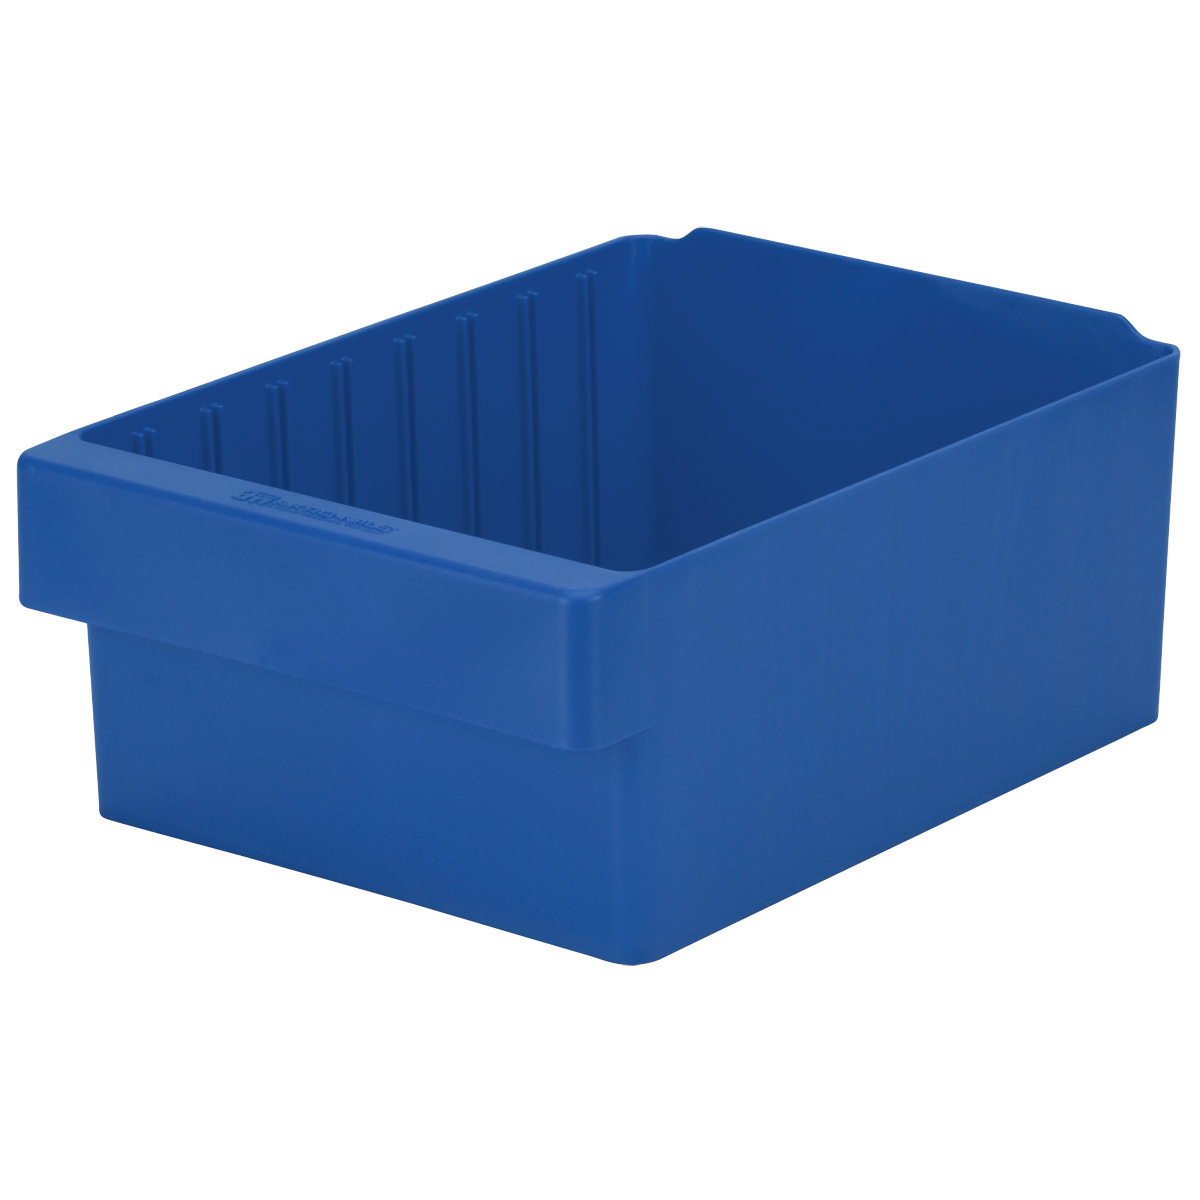 AkroDrawer 11-5/8 x 8-3/8 x 4-5/8, Blue (31182BLU).  This item sold in carton quantities of 4.